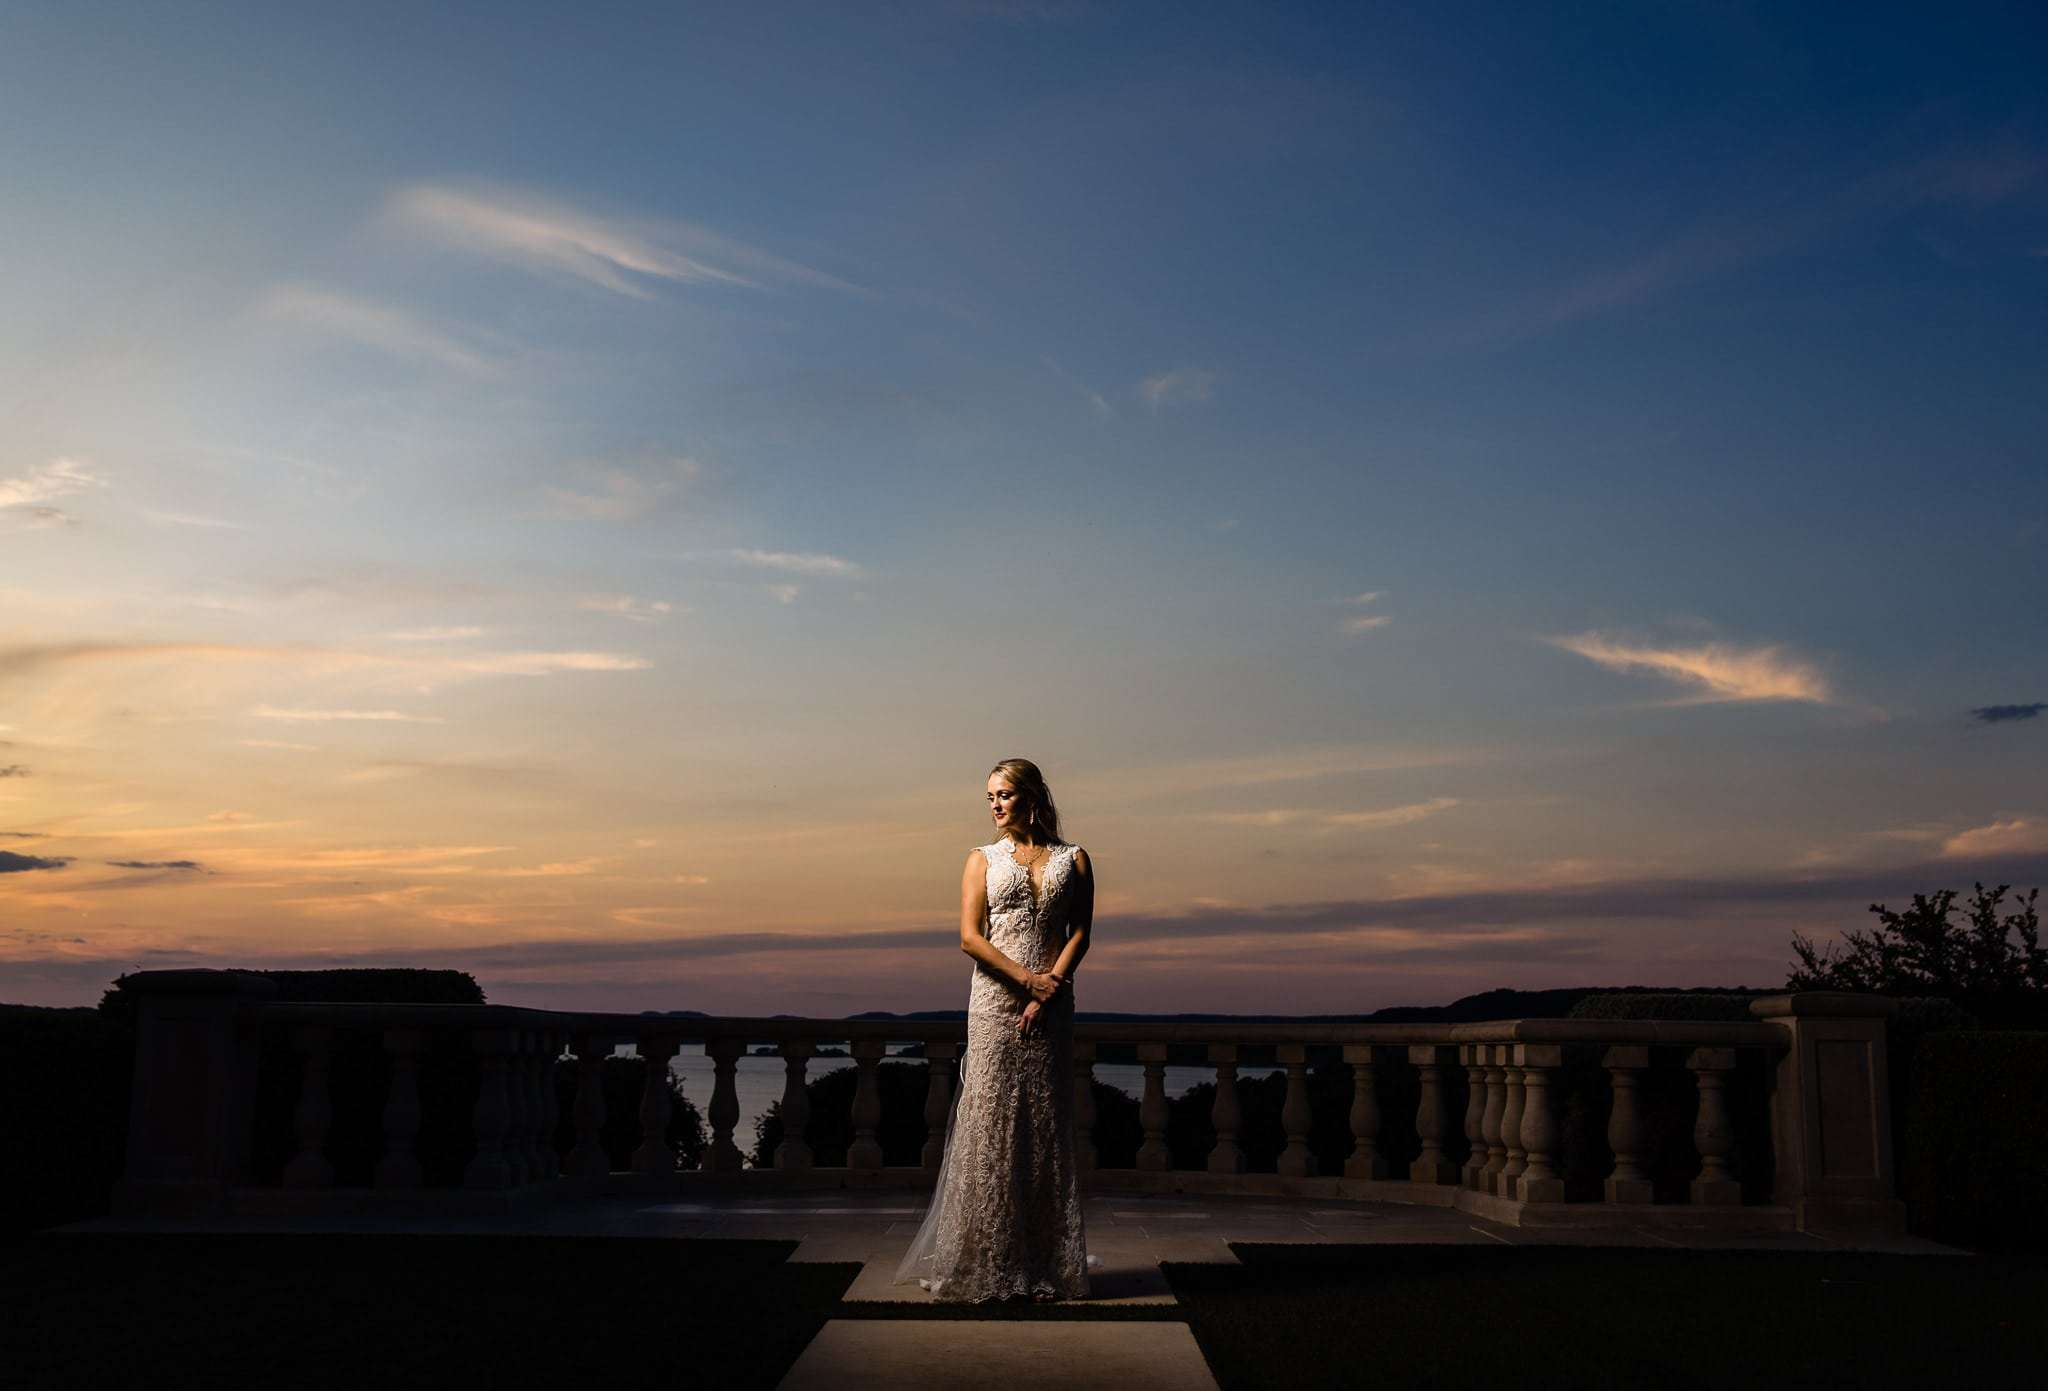 austin wedding photographer best bridal image sunset